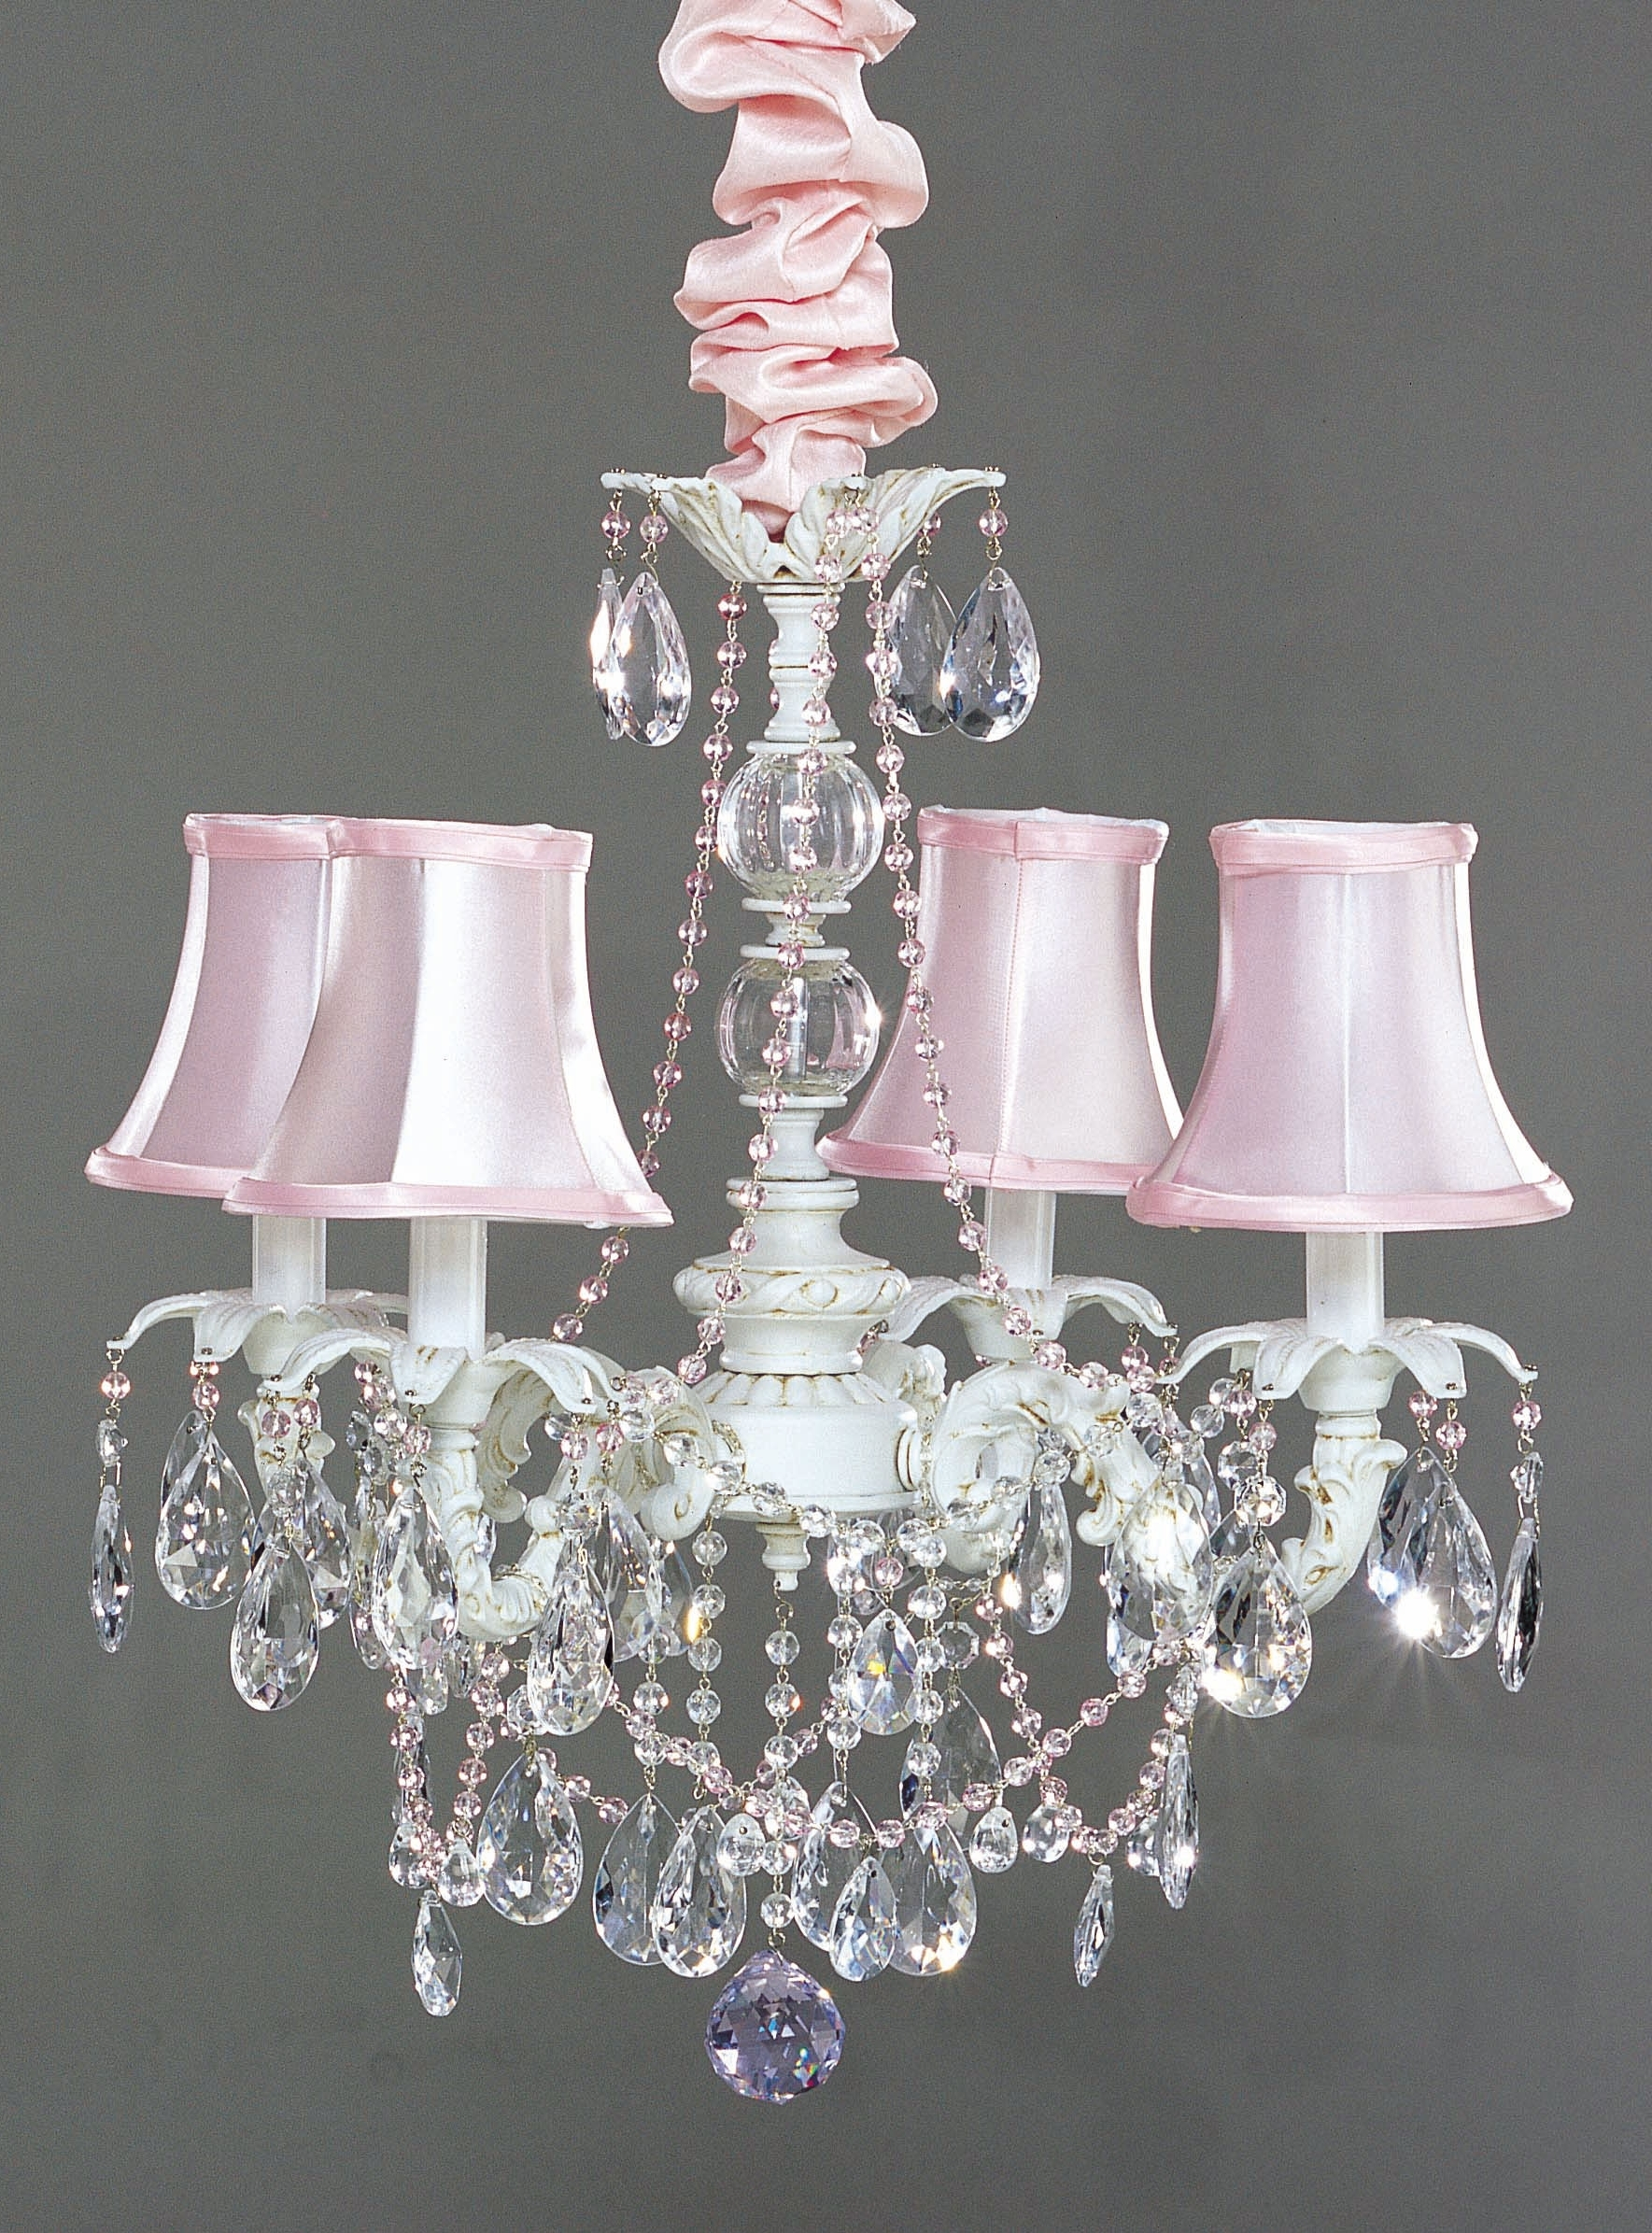 Shabby Chic Chandeliers Throughout Well Known Shabby Chic Chandeliers Amazinghabby Table Lamp Lighting Crystal (View 14 of 15)